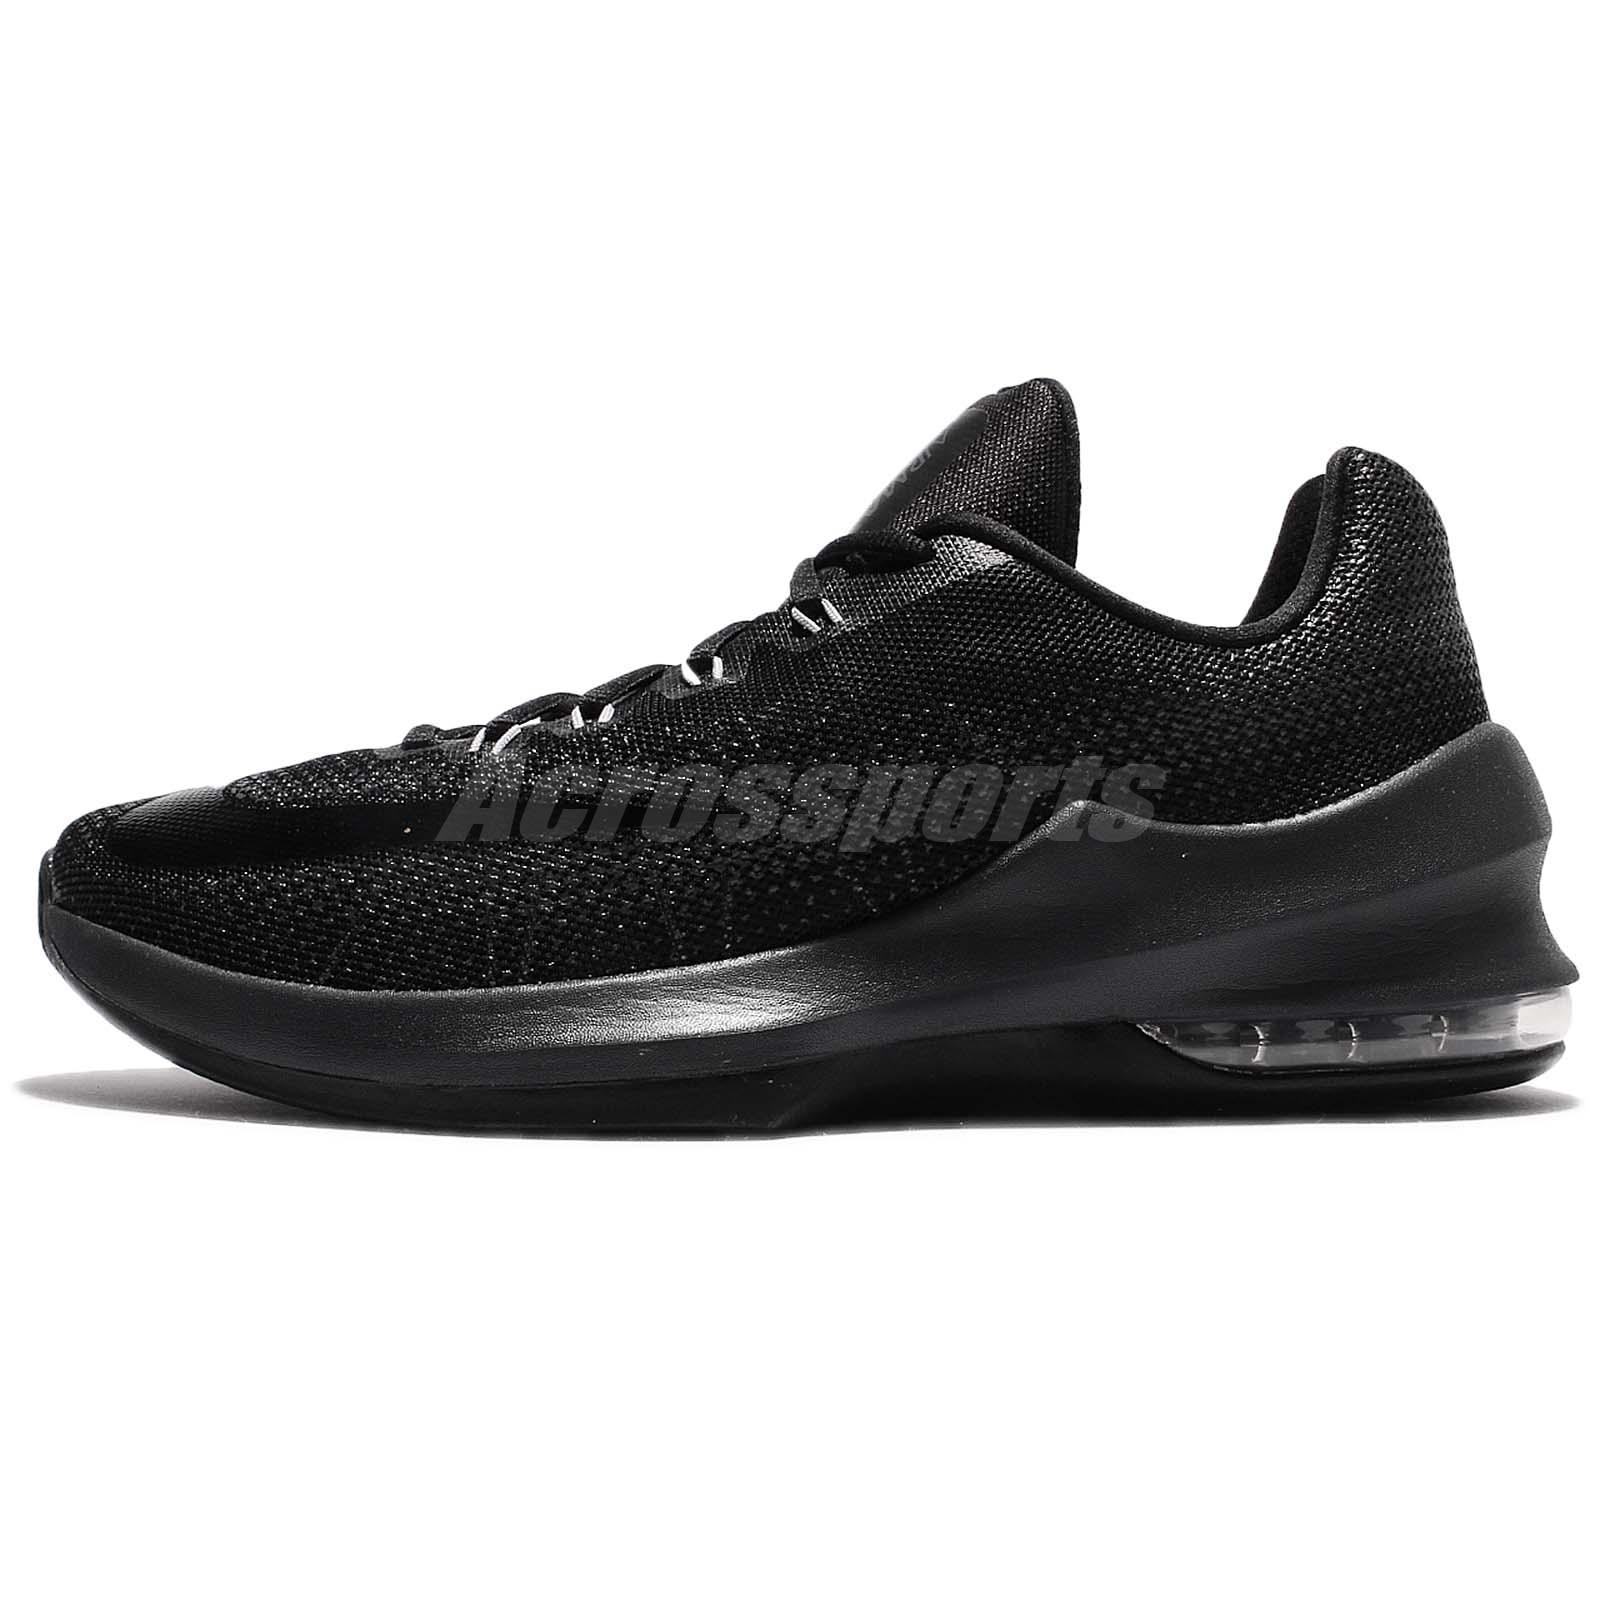 sale retailer 756af eec1f ... coupon nike air max infuriate low black men basketball shoes sneakers  852457 001 61d6e 4b74d